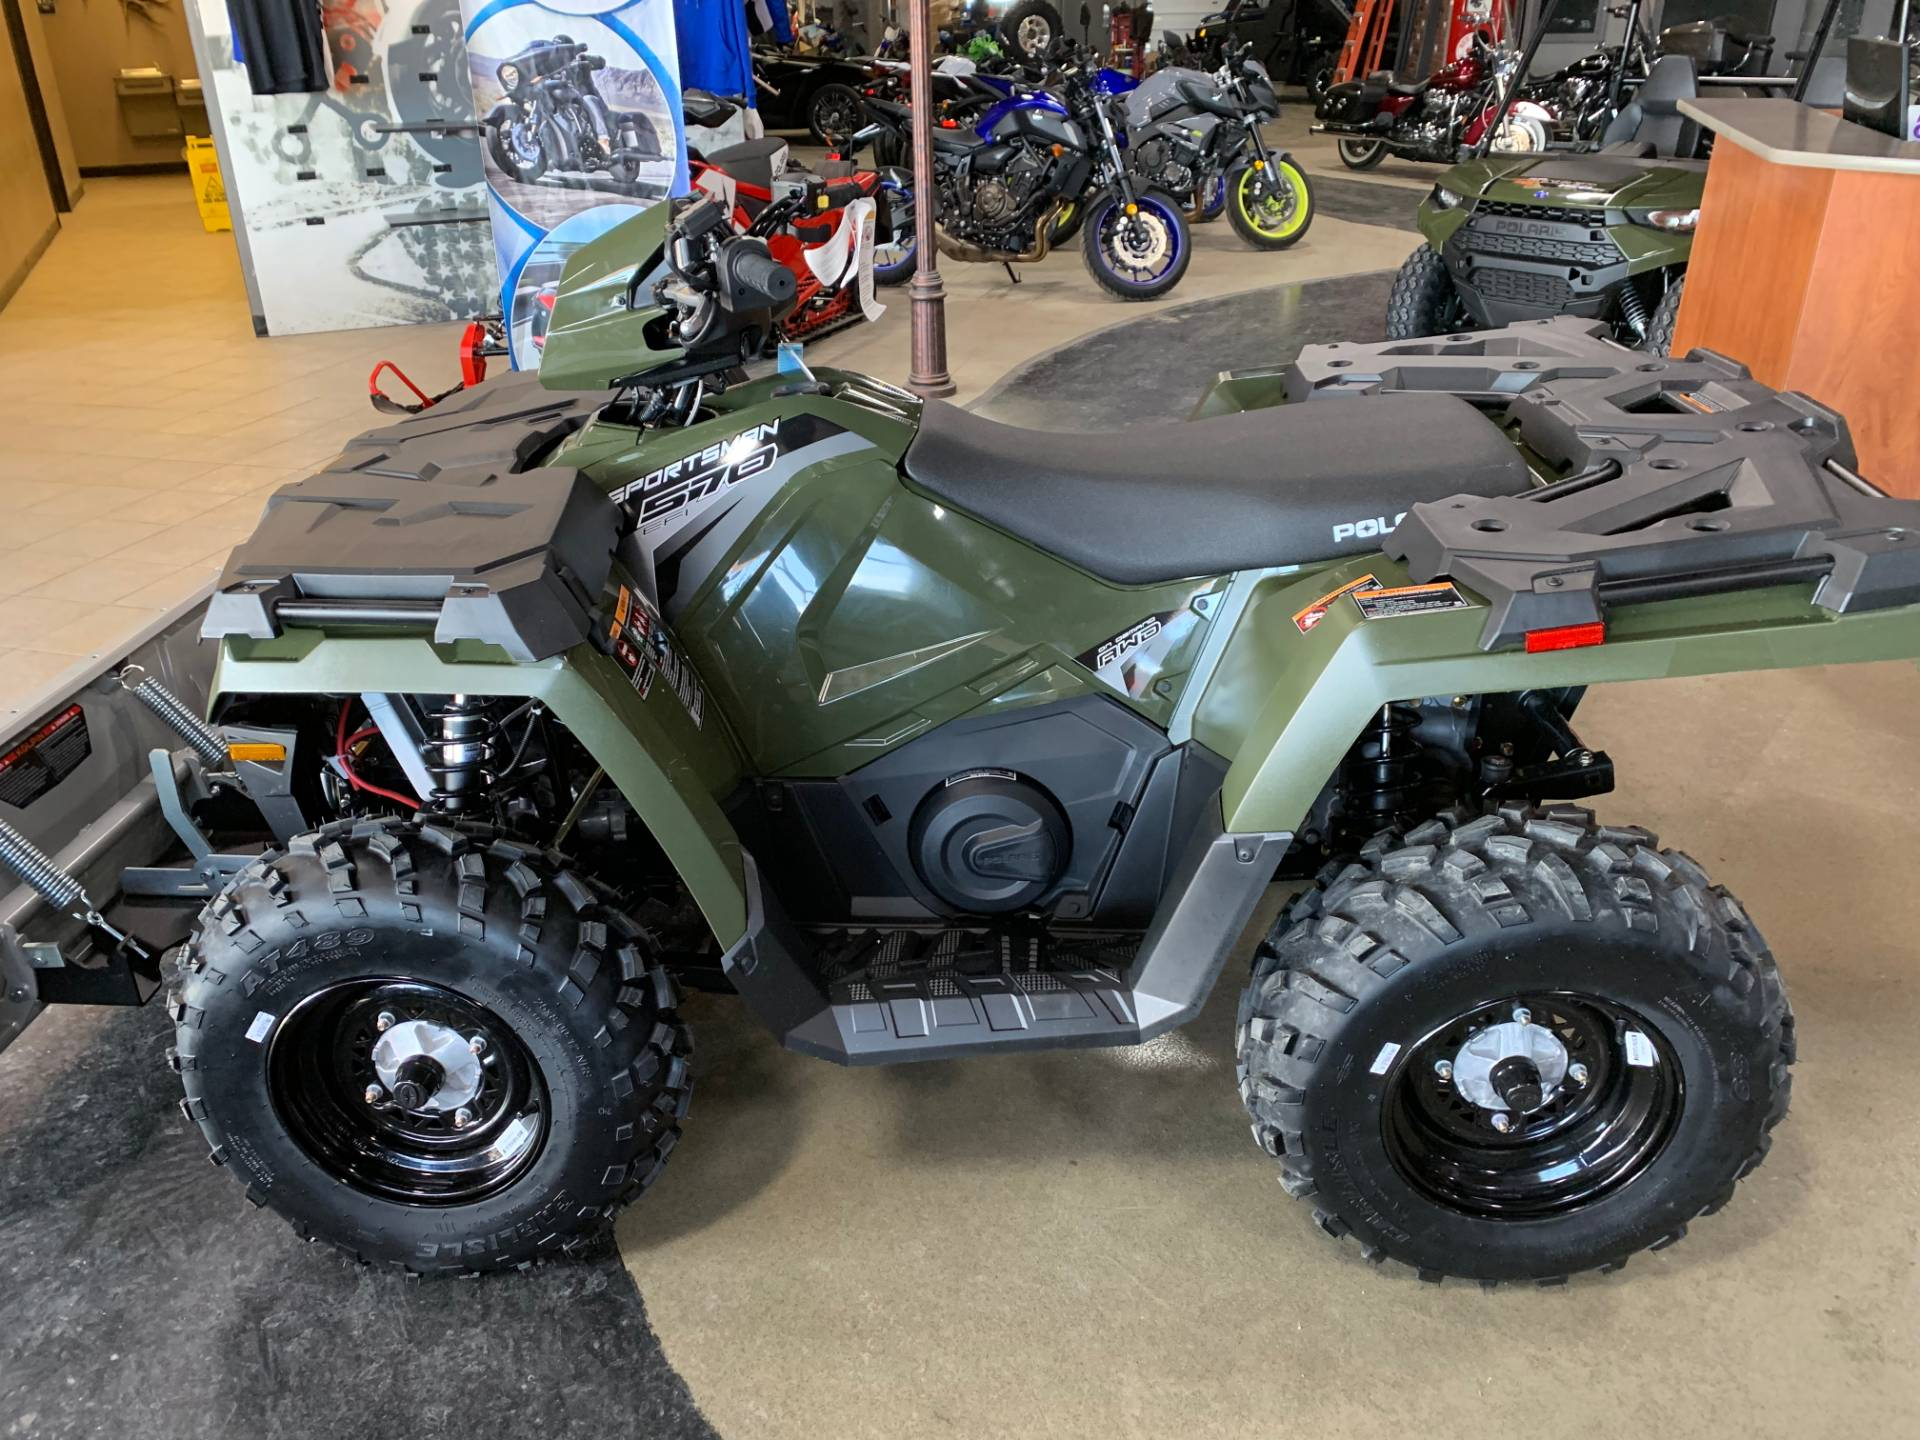 2018 Polaris Sportsman 570 in Dimondale, Michigan - Photo 2